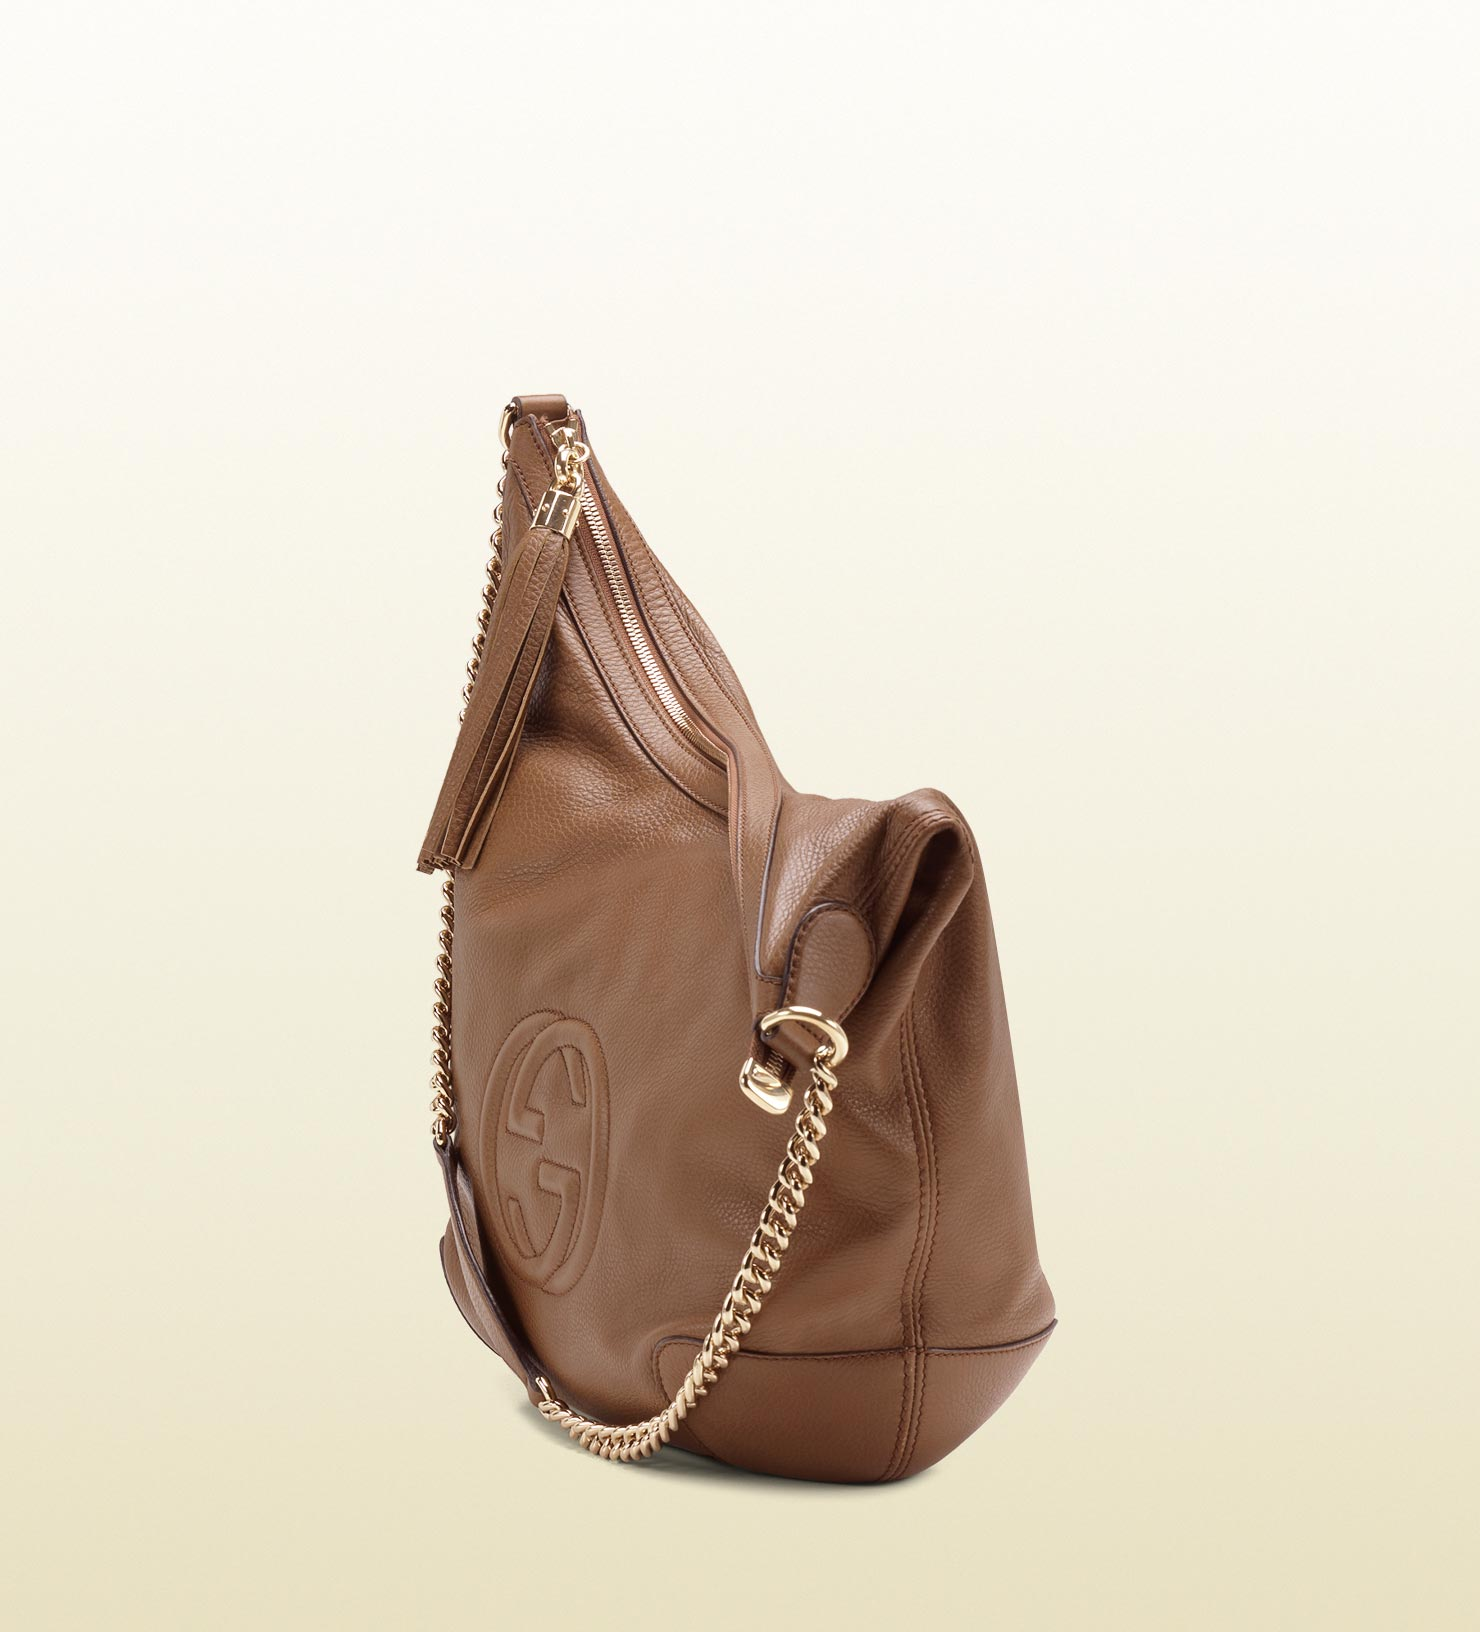 740916bbbbf Lyst - Gucci Soho Maple Brown Leather Shoulder Bag with Chain Strap in Brown